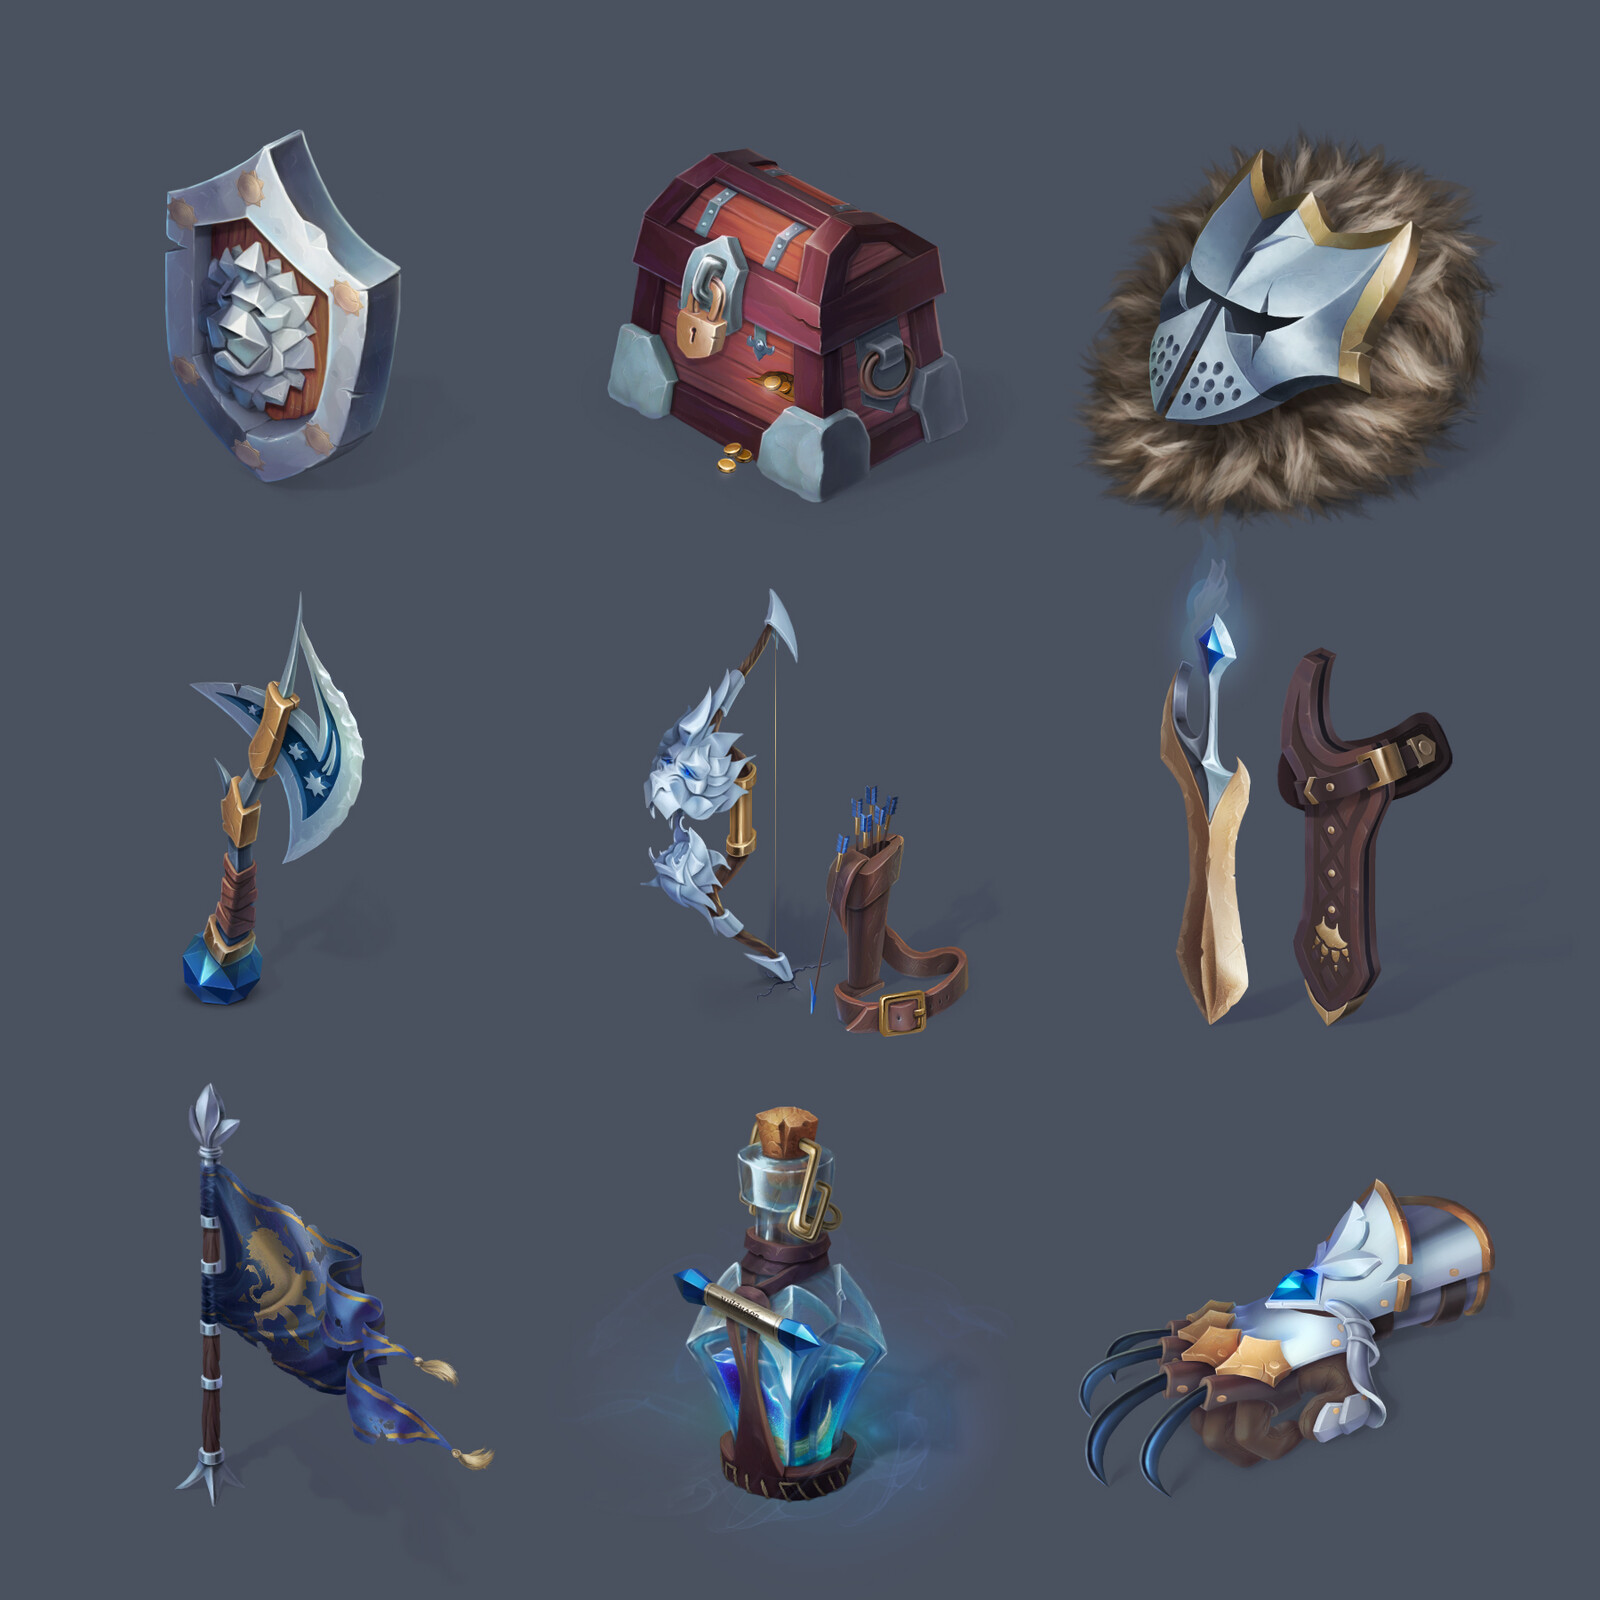 Lion Knight's props